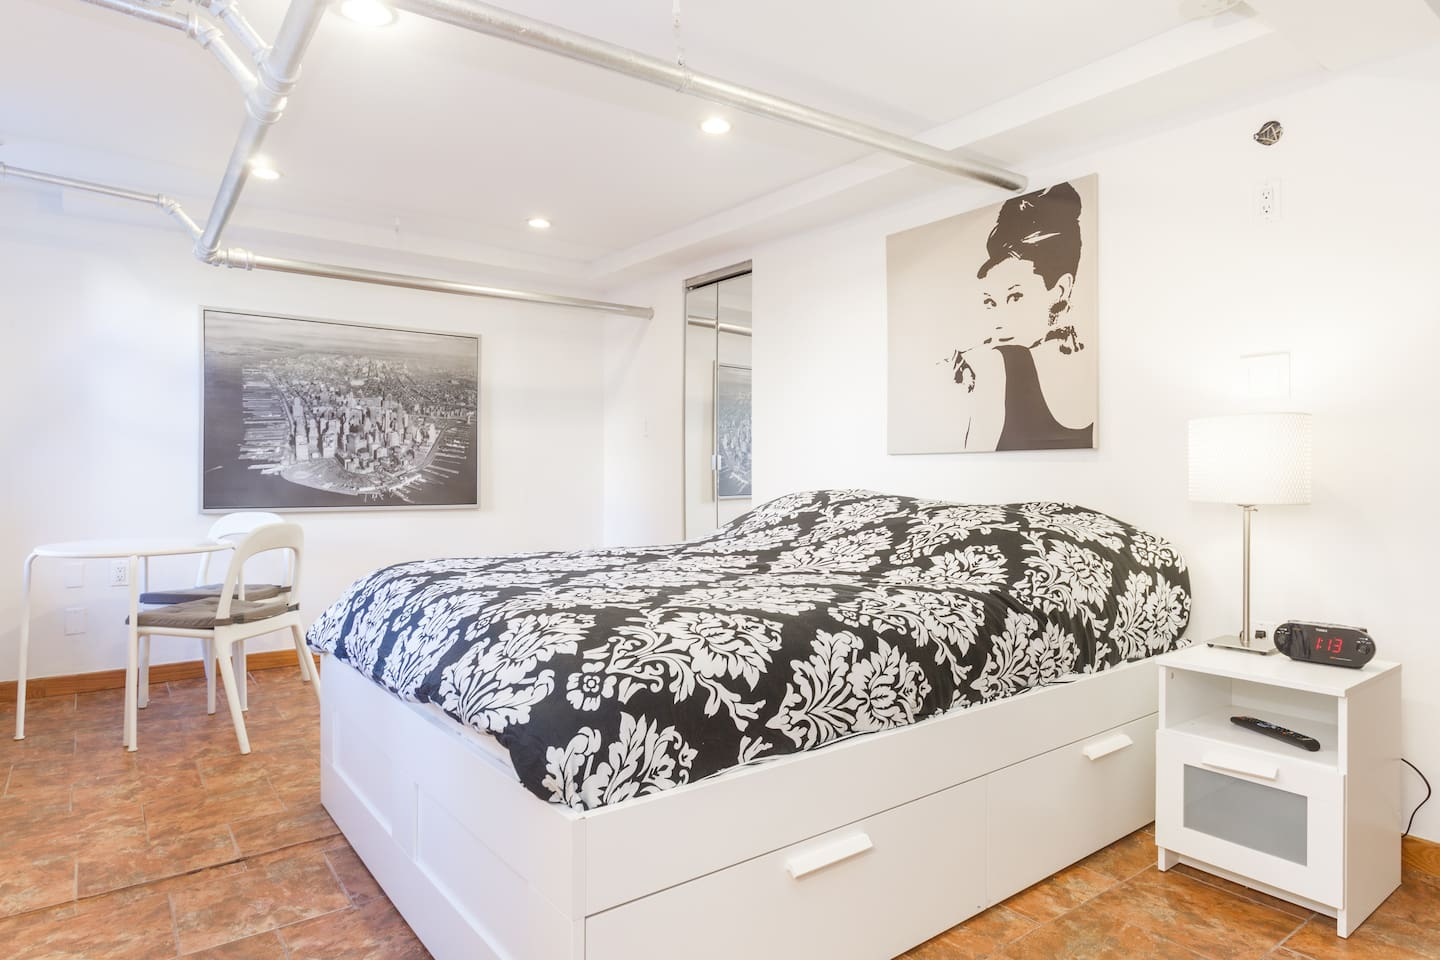 a gem garden apt on broadway 42st queens ny apartments for rent